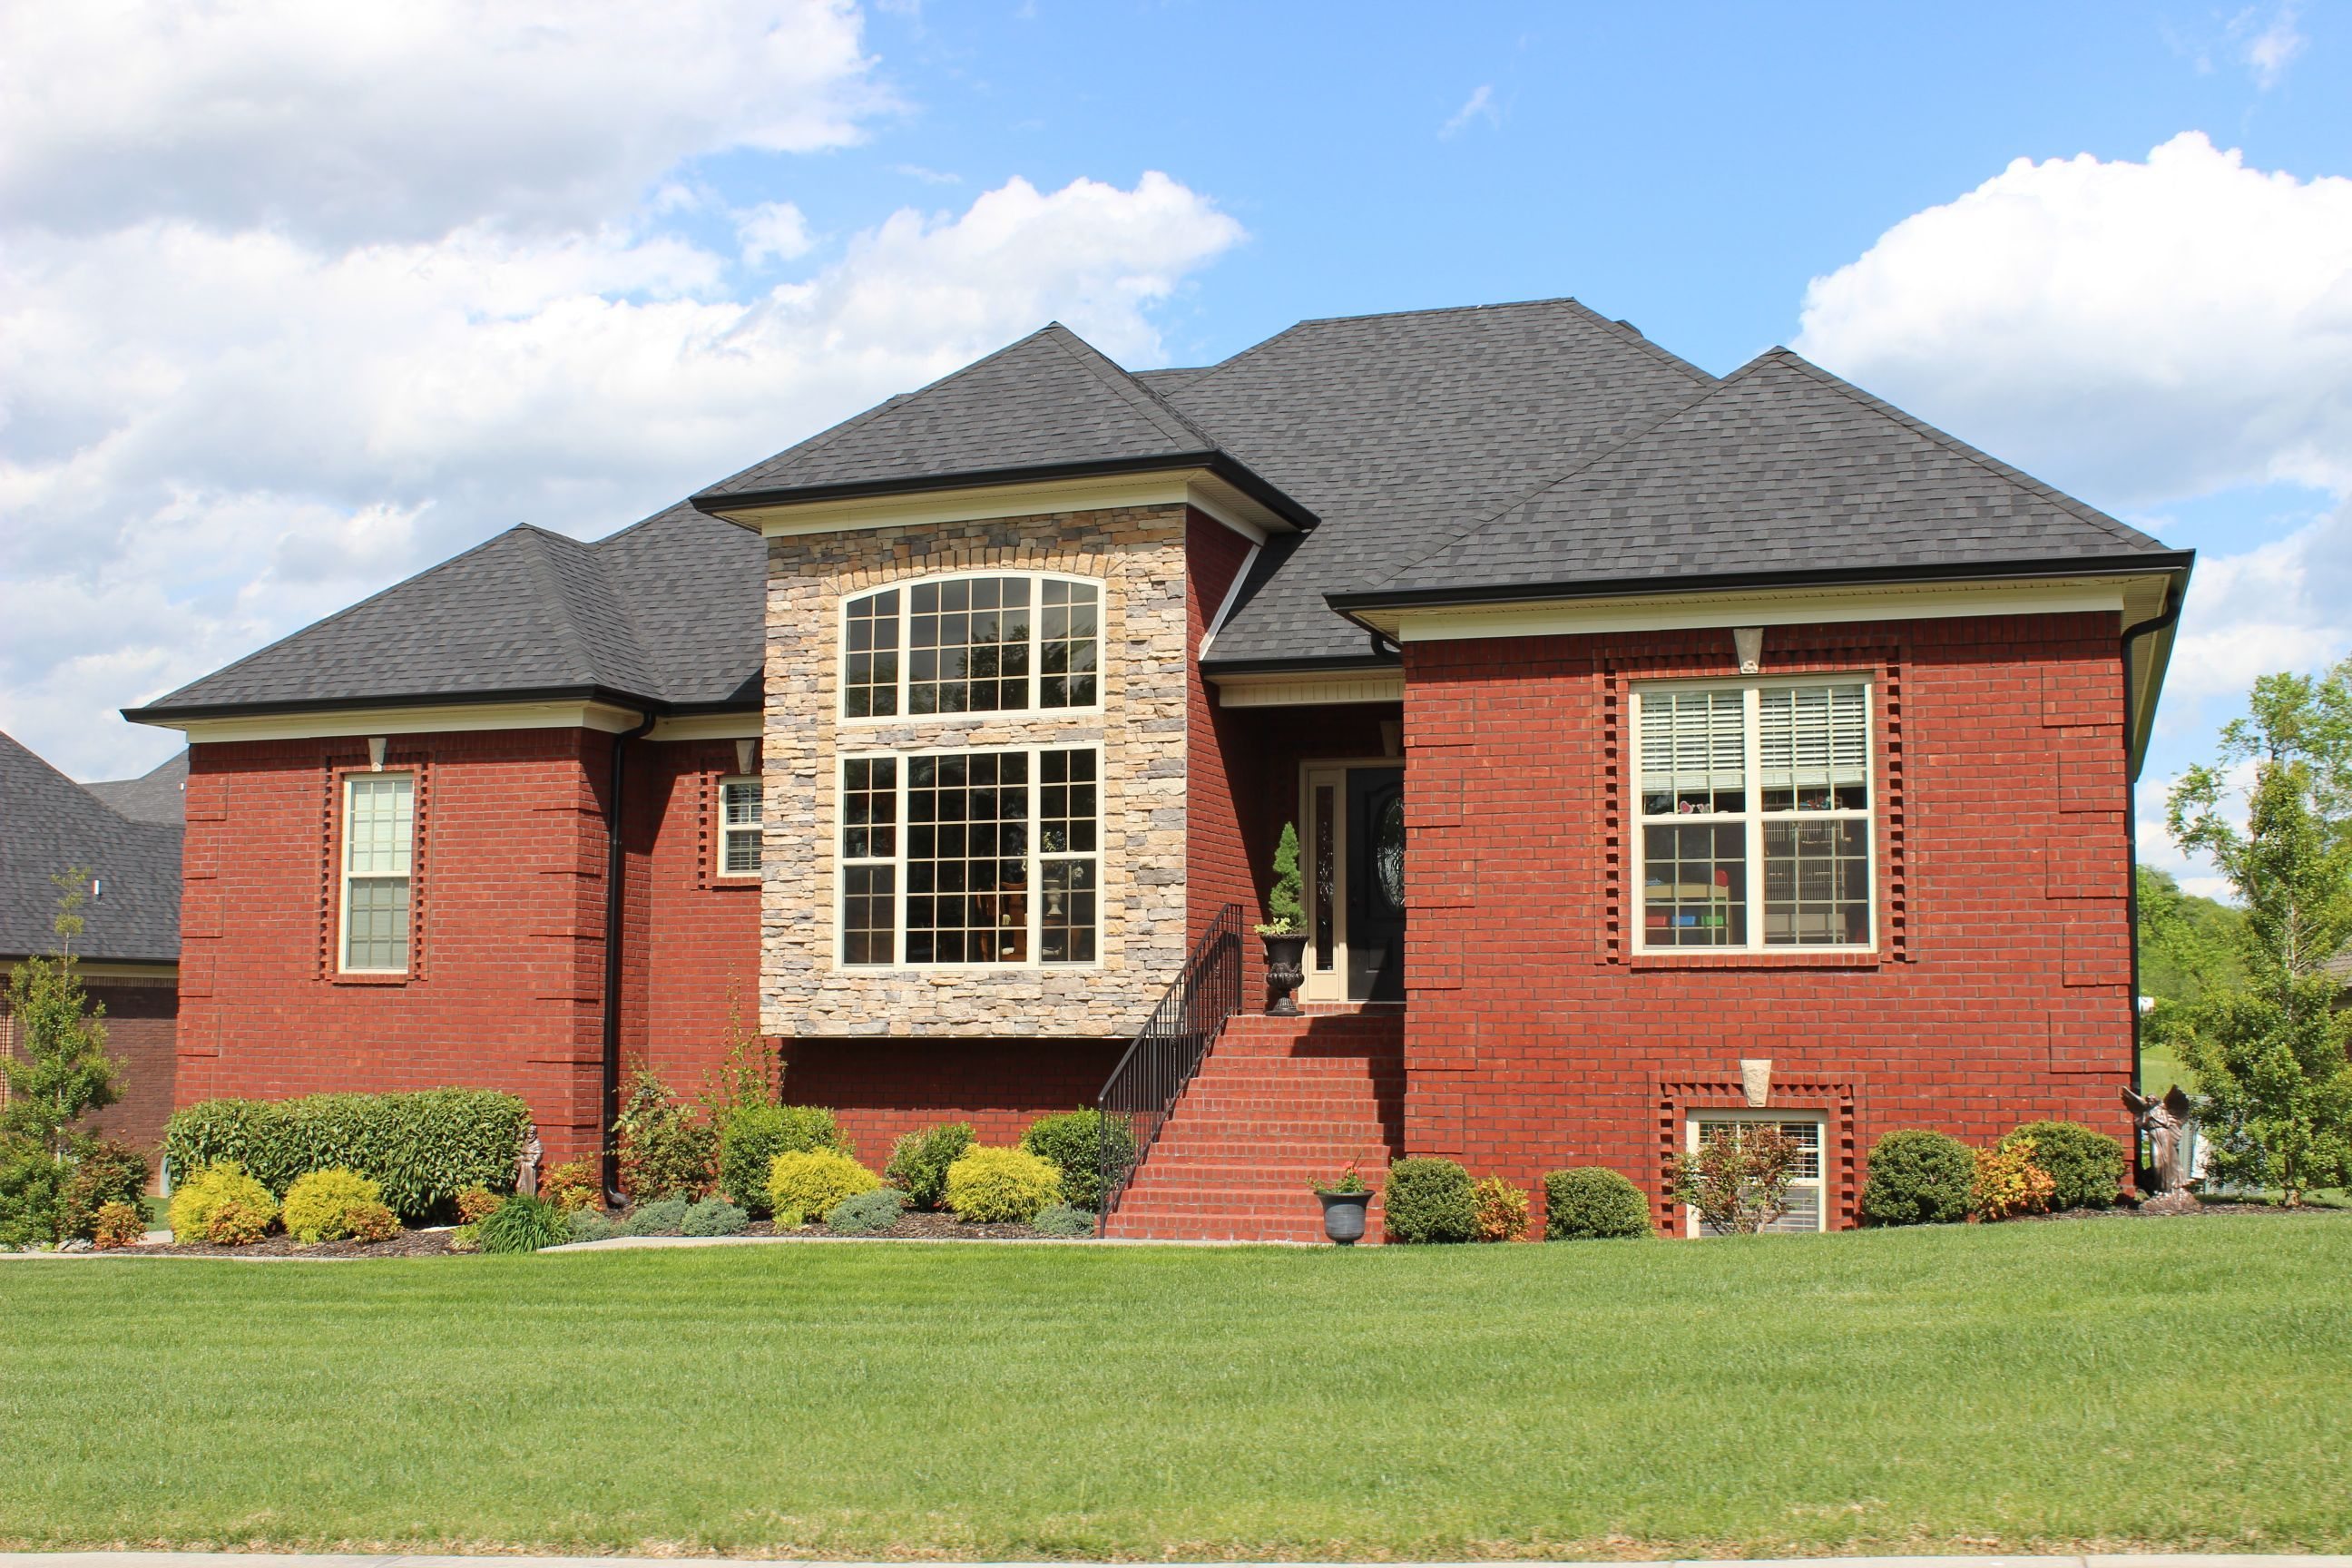 New Homes For Sale With Basements In Clarksville Tn